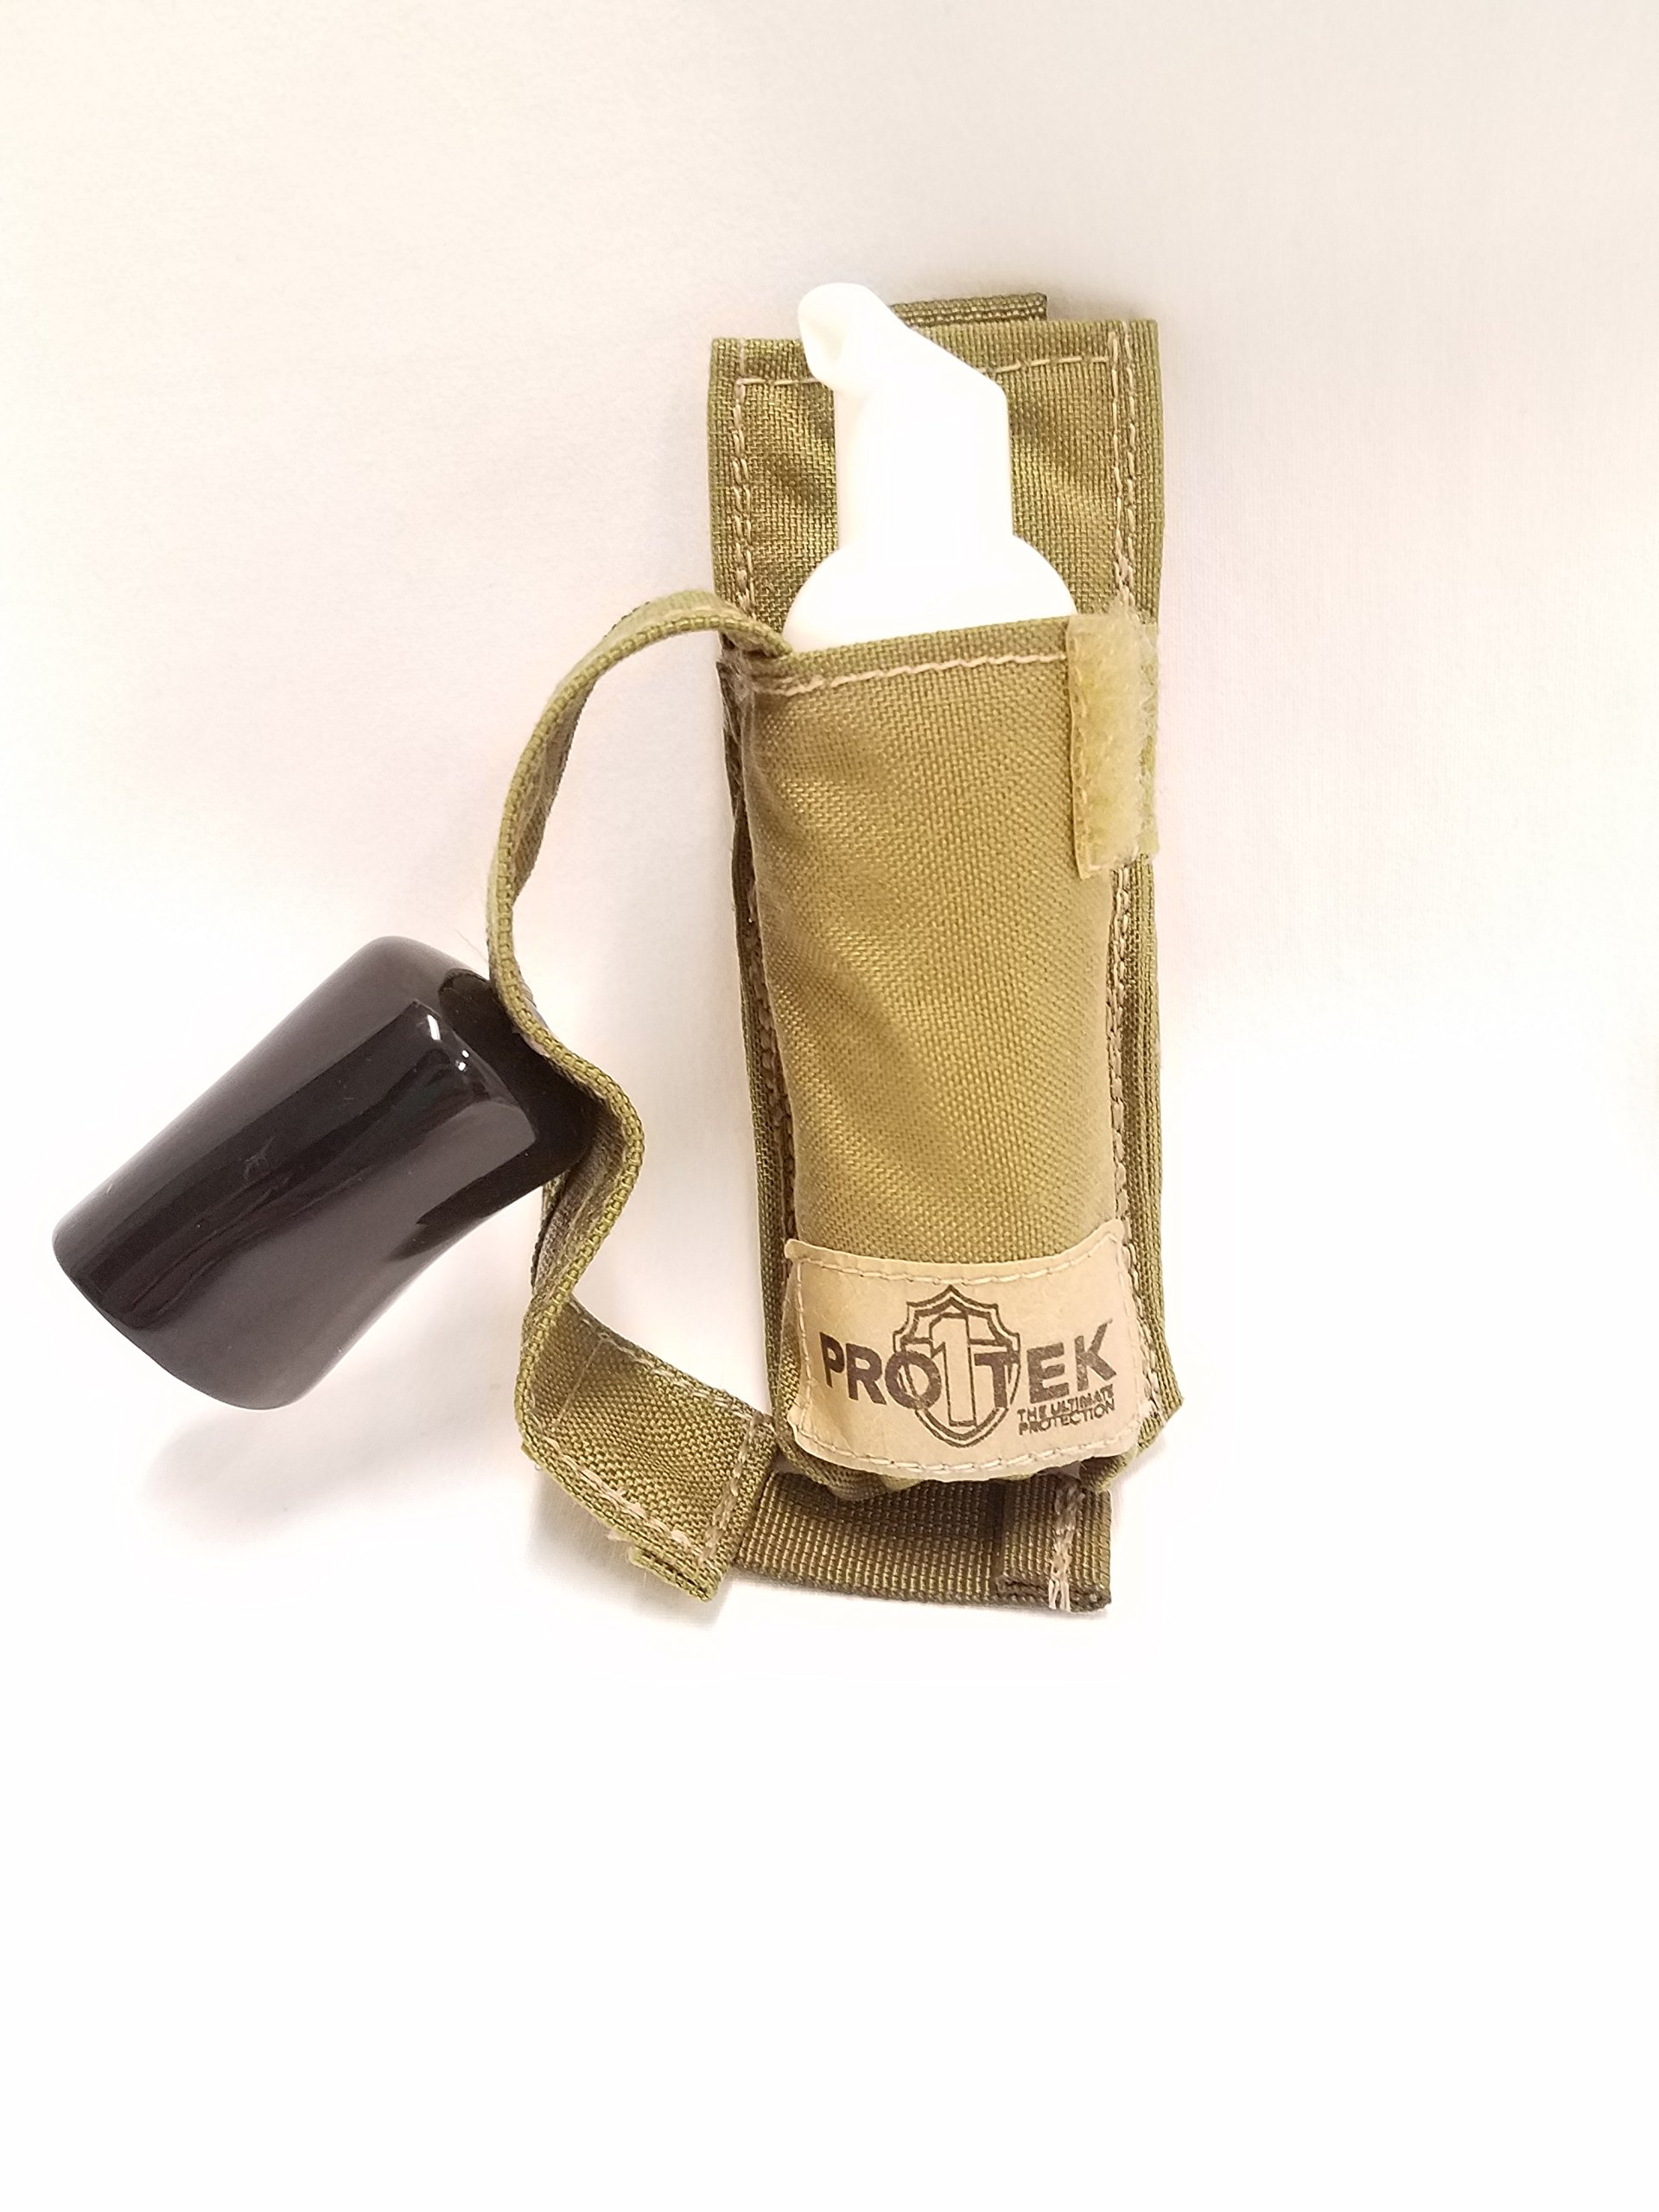 PRO1TEK 50ML SANITIZER WITH COYOTE TAN PROTECTIVE COVER- CASE OF 21 by PRO1TEK (Image #1)